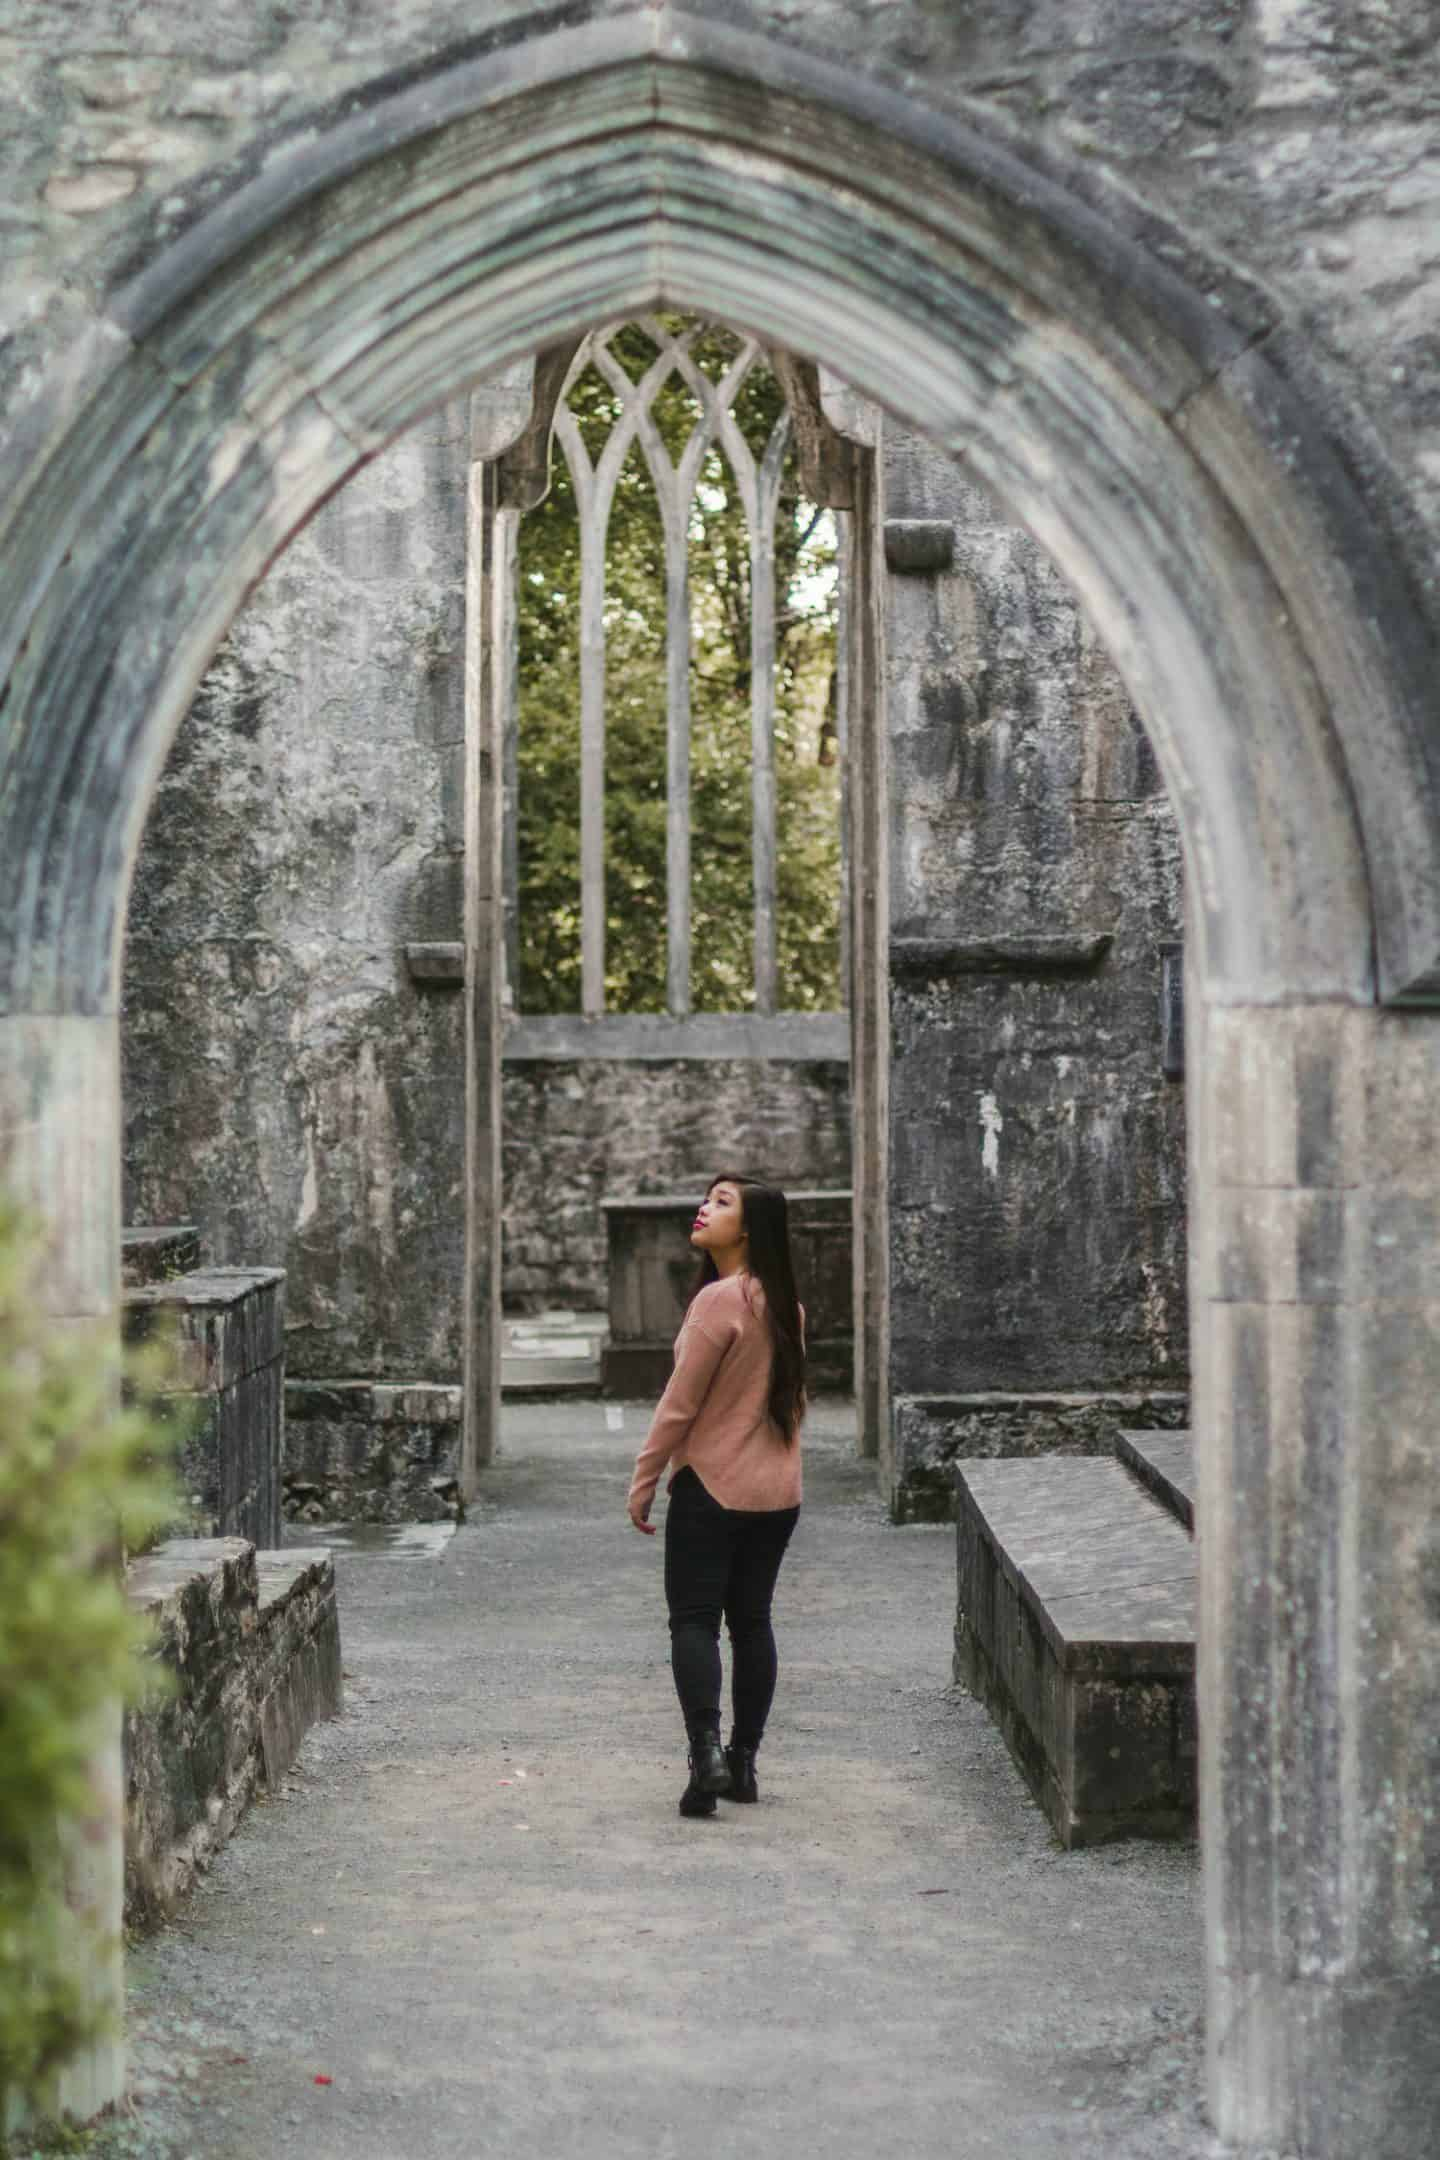 A visit to the old Muckross Abbey in Ireland